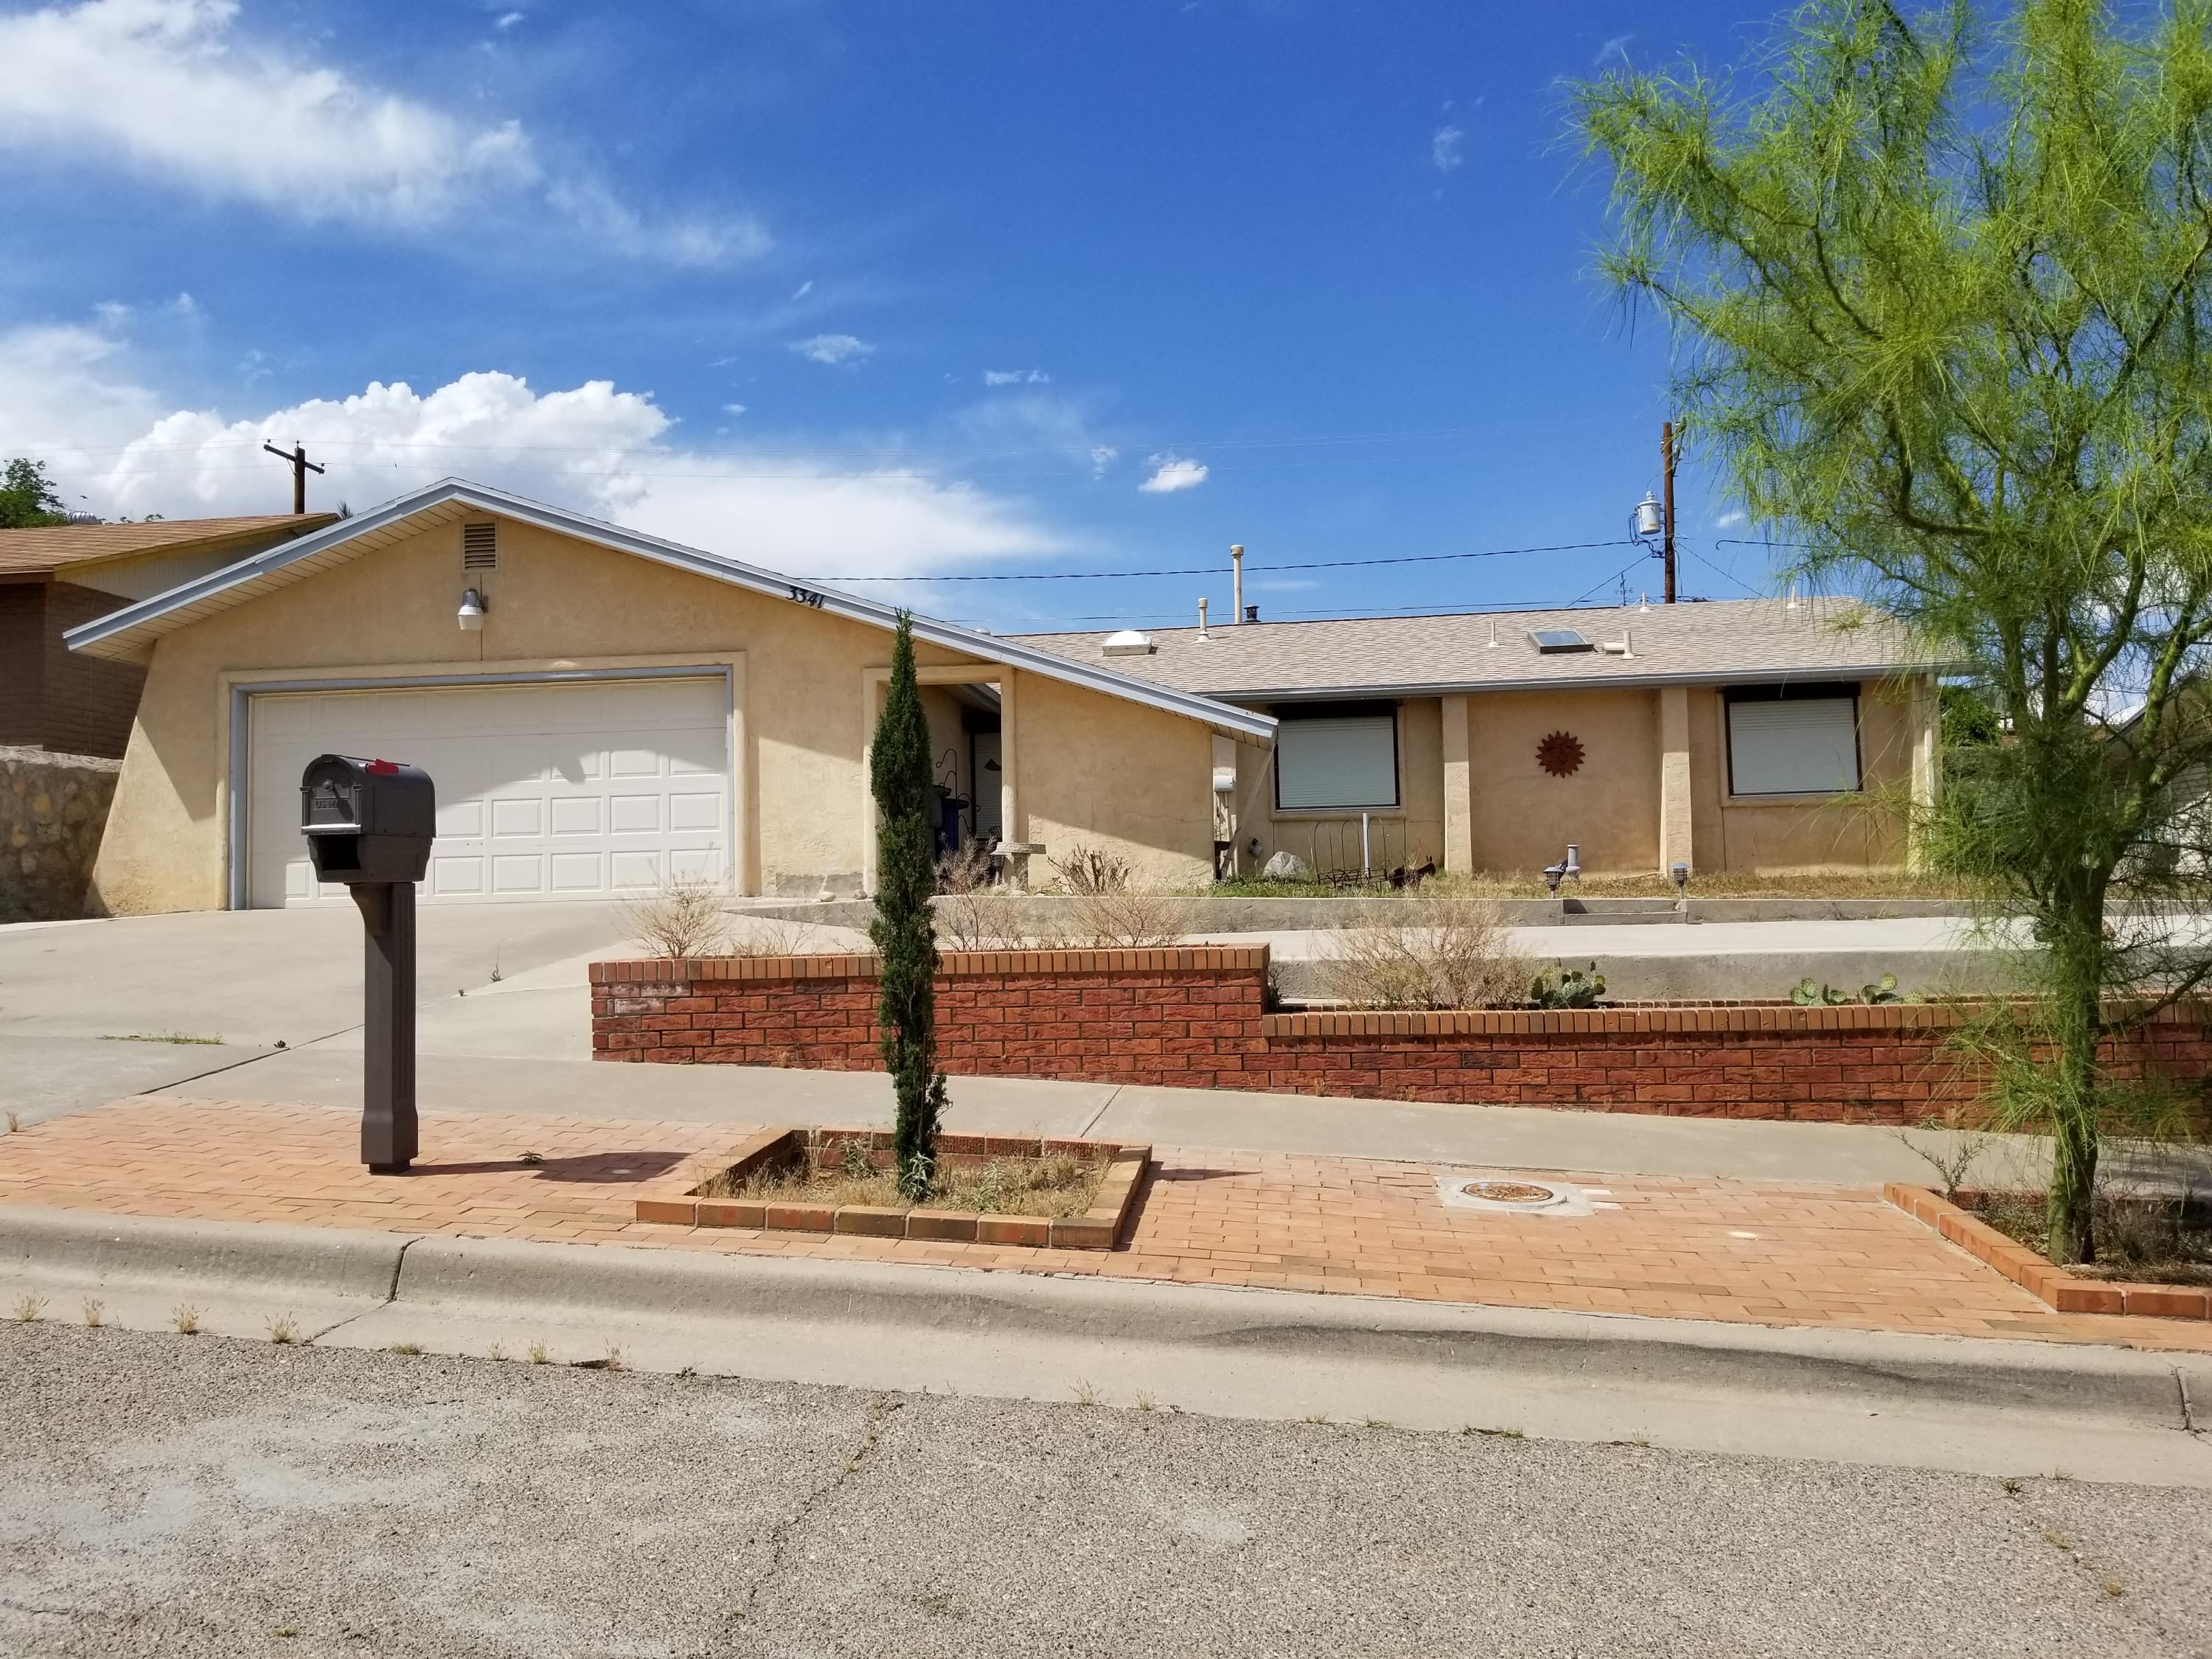 3341 EVALYN, El Paso, Texas 79904, 3 Bedrooms Bedrooms, ,2 BathroomsBathrooms,Residential,For sale,EVALYN,807303